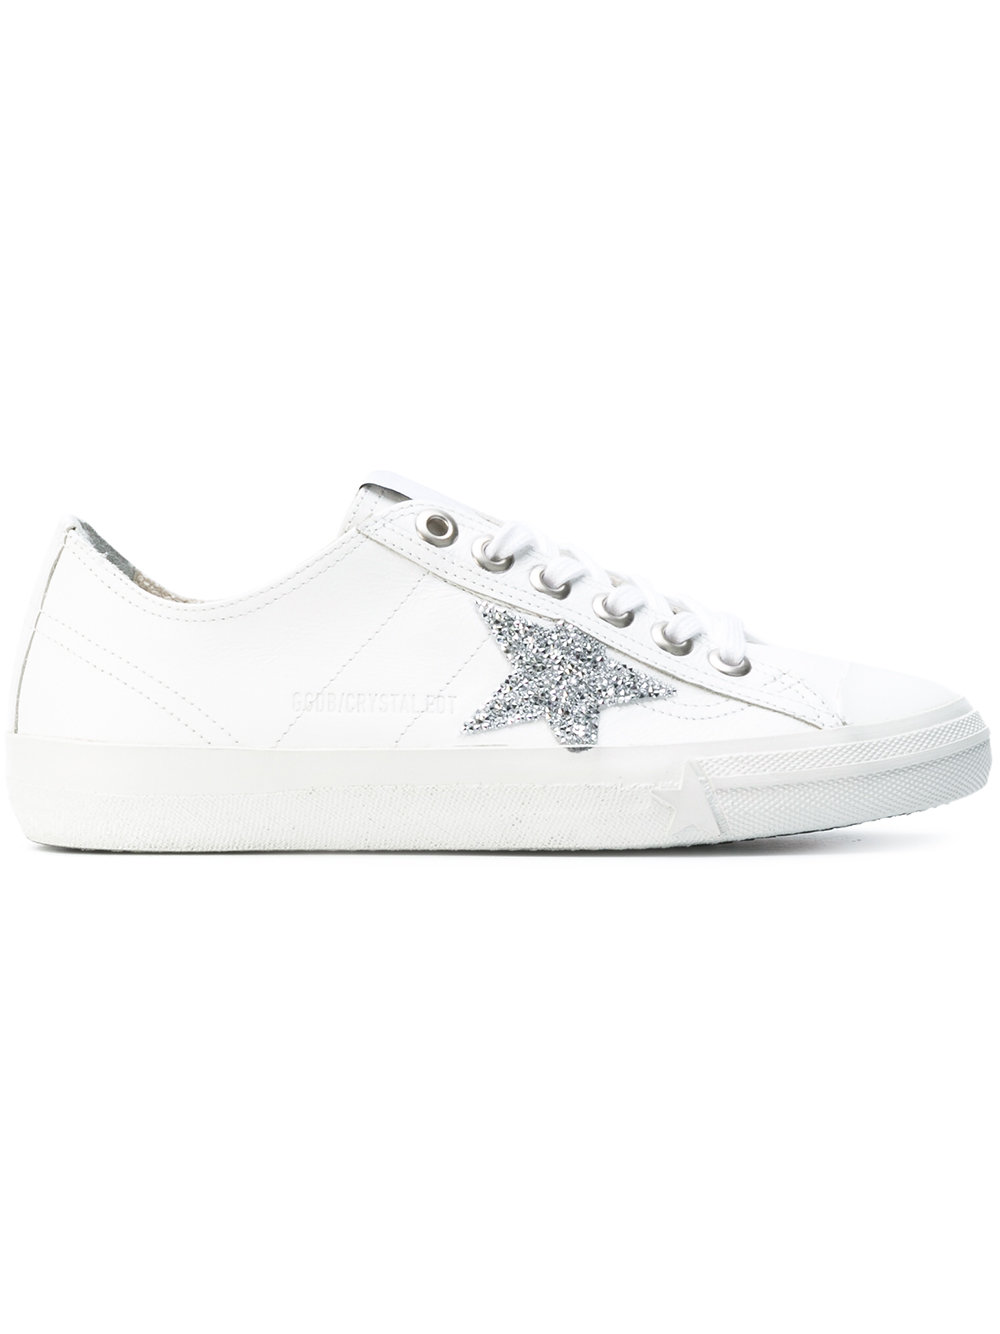 Golden Goose Superstar Sneakers In White Leather With Crystal Edition Star